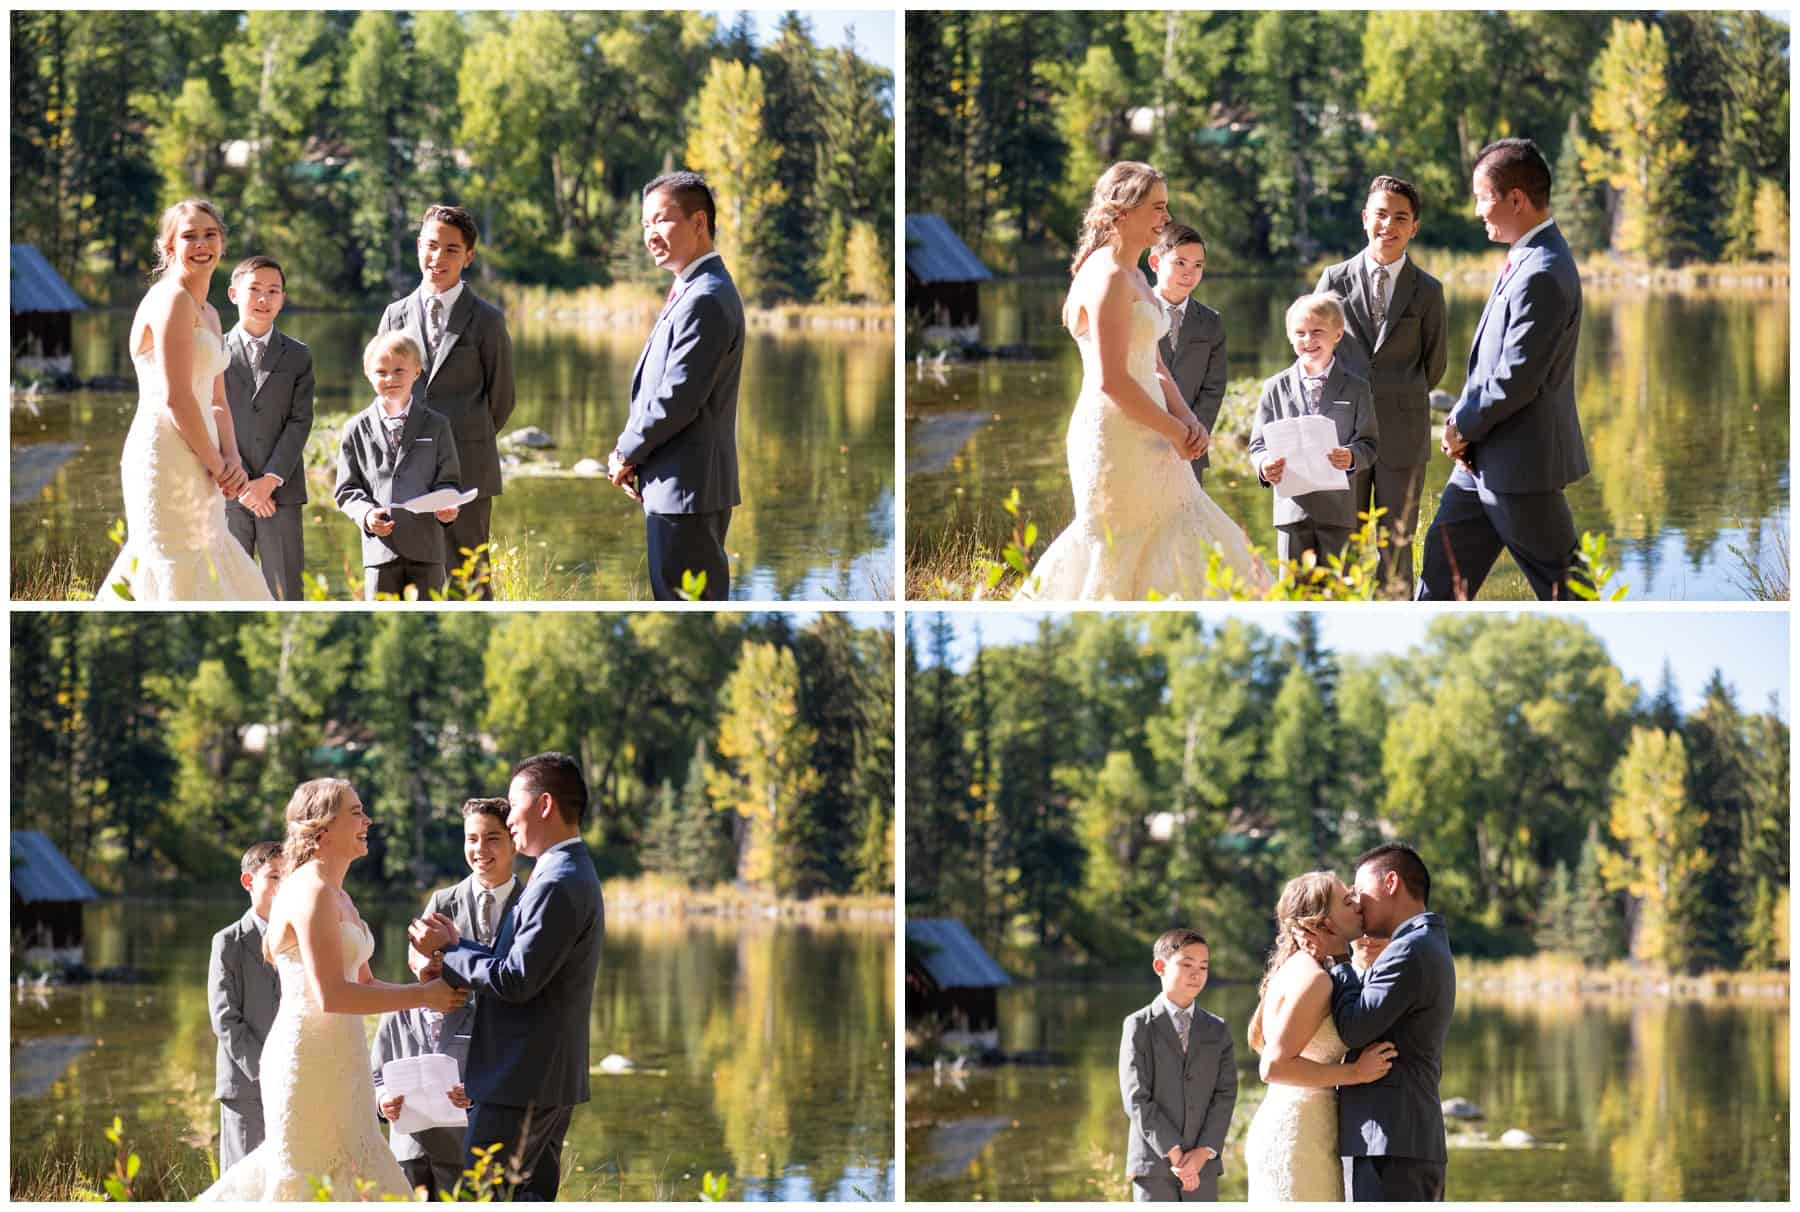 wedding at hallam lake in aspen colorado